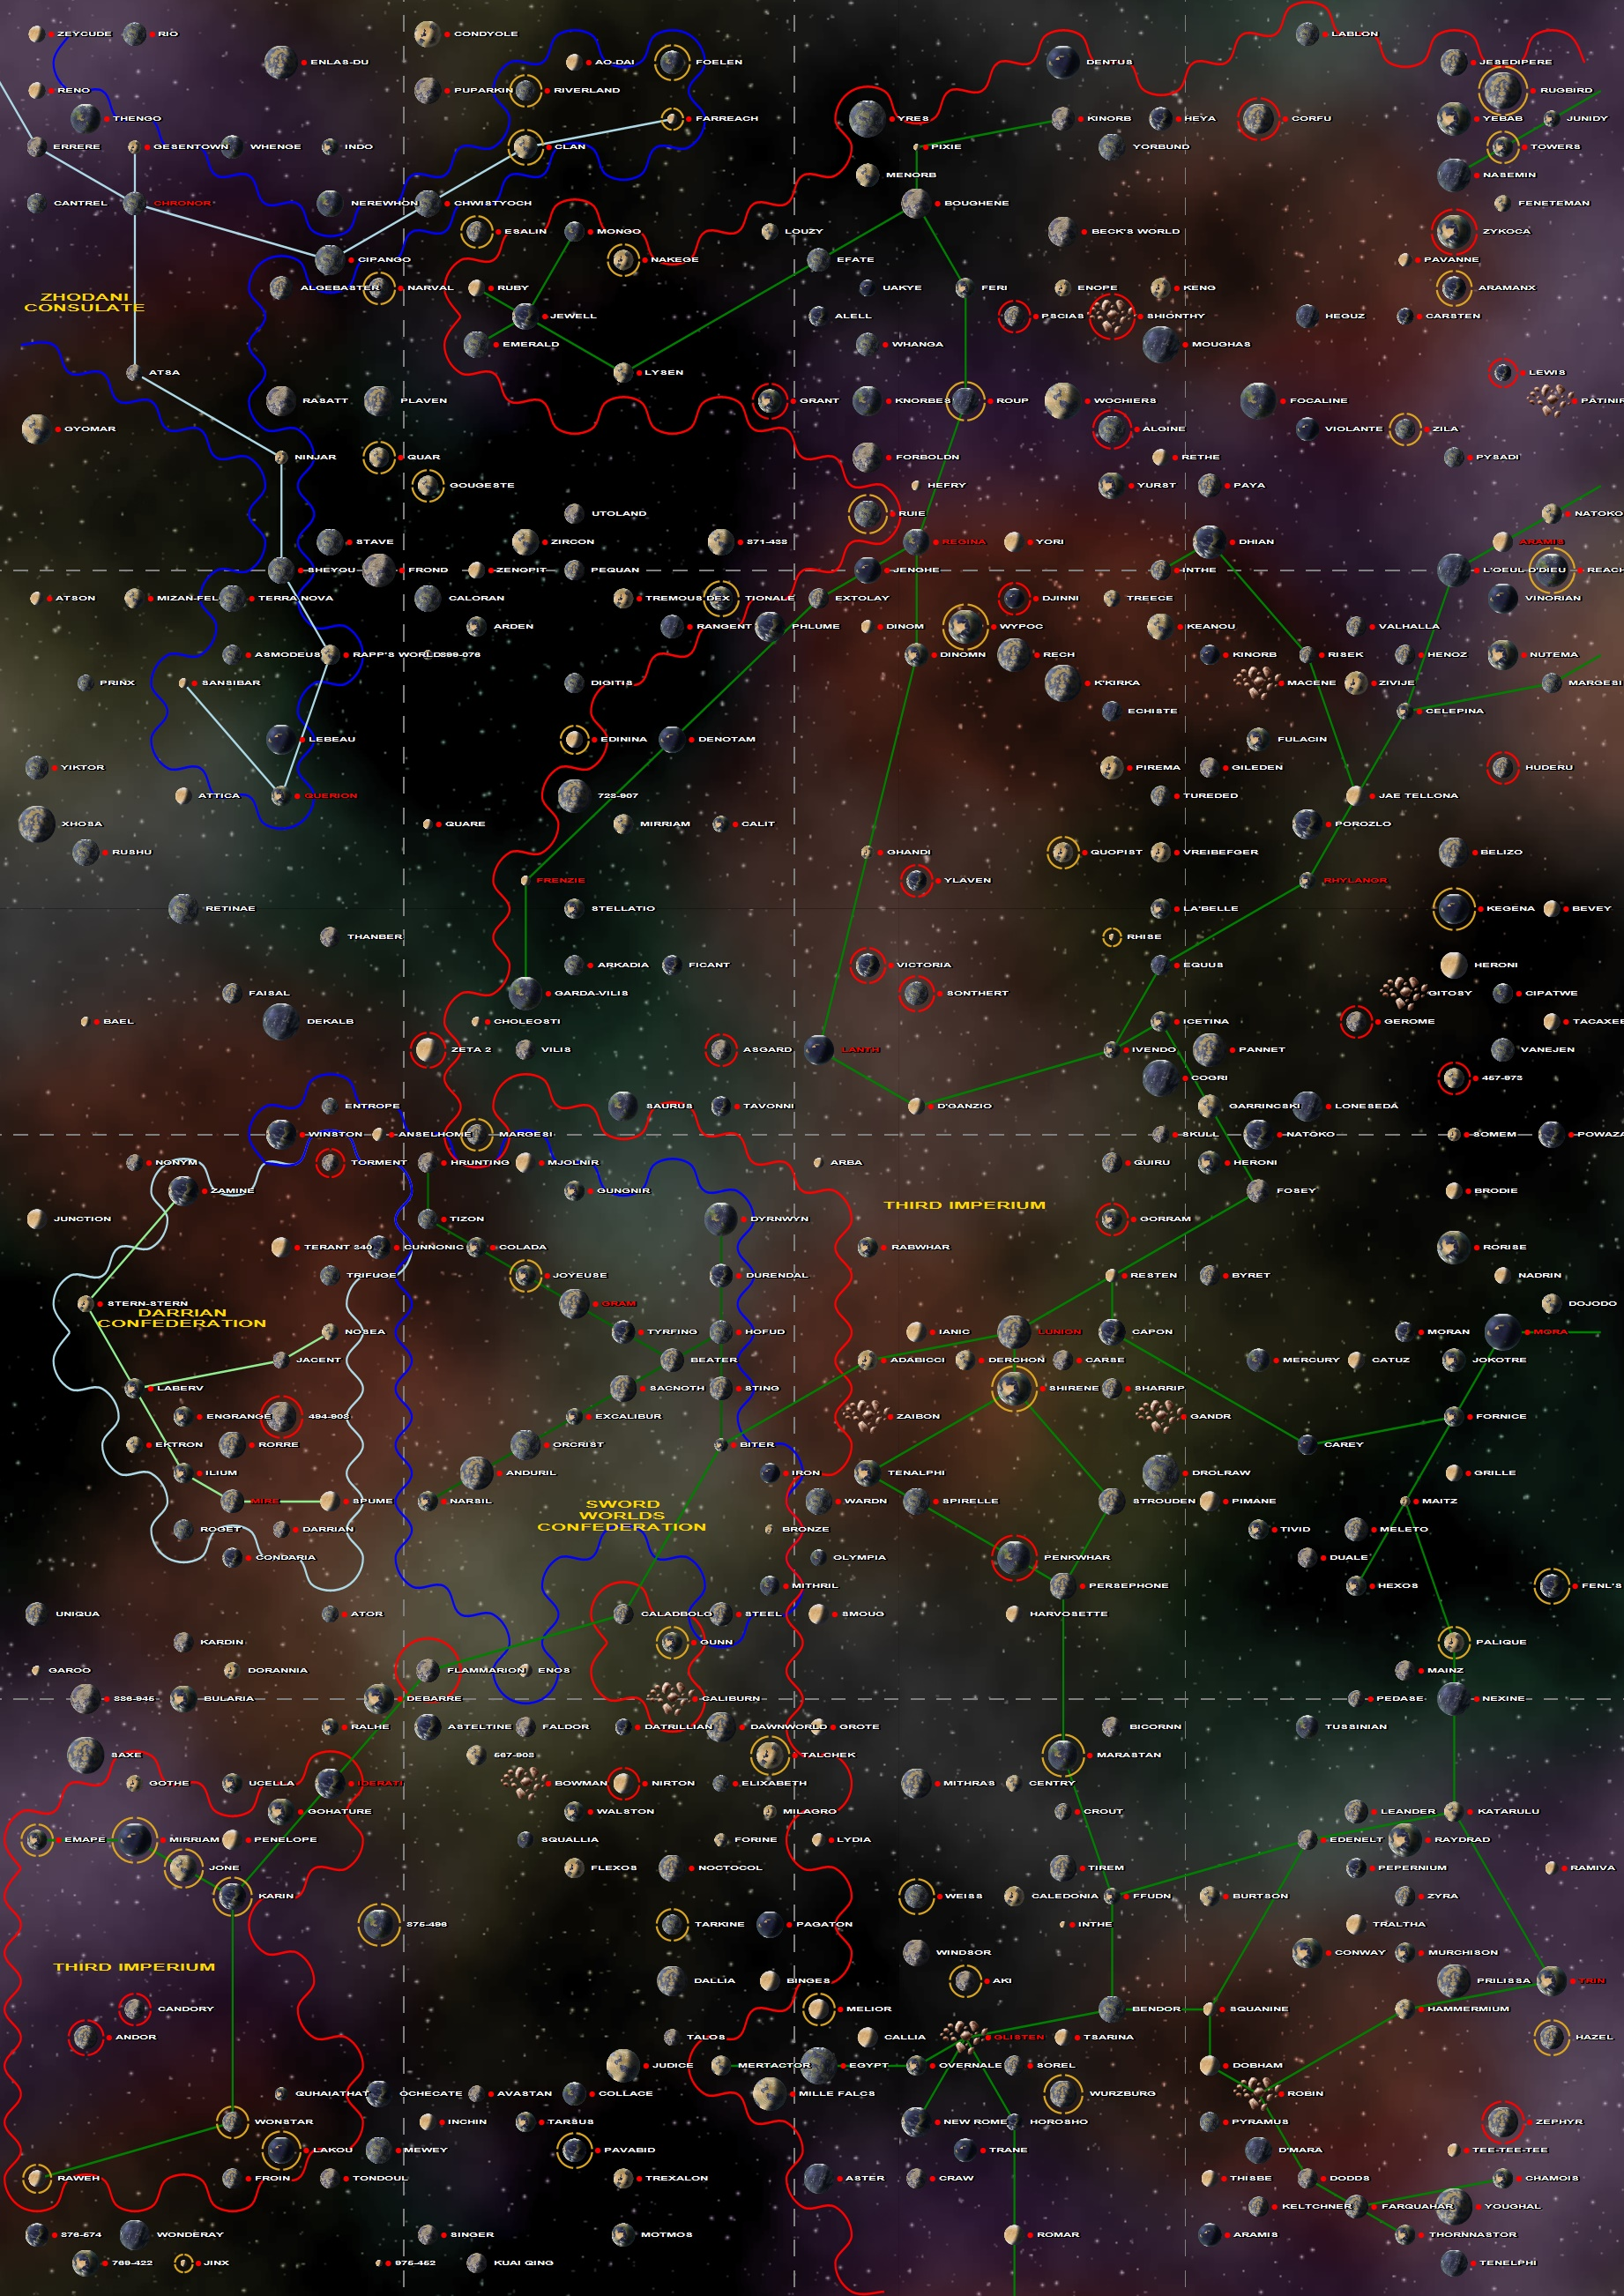 Spinward_Marches_Sector_Map__Candy_Poster___by_Zho_BeRKa.jpg